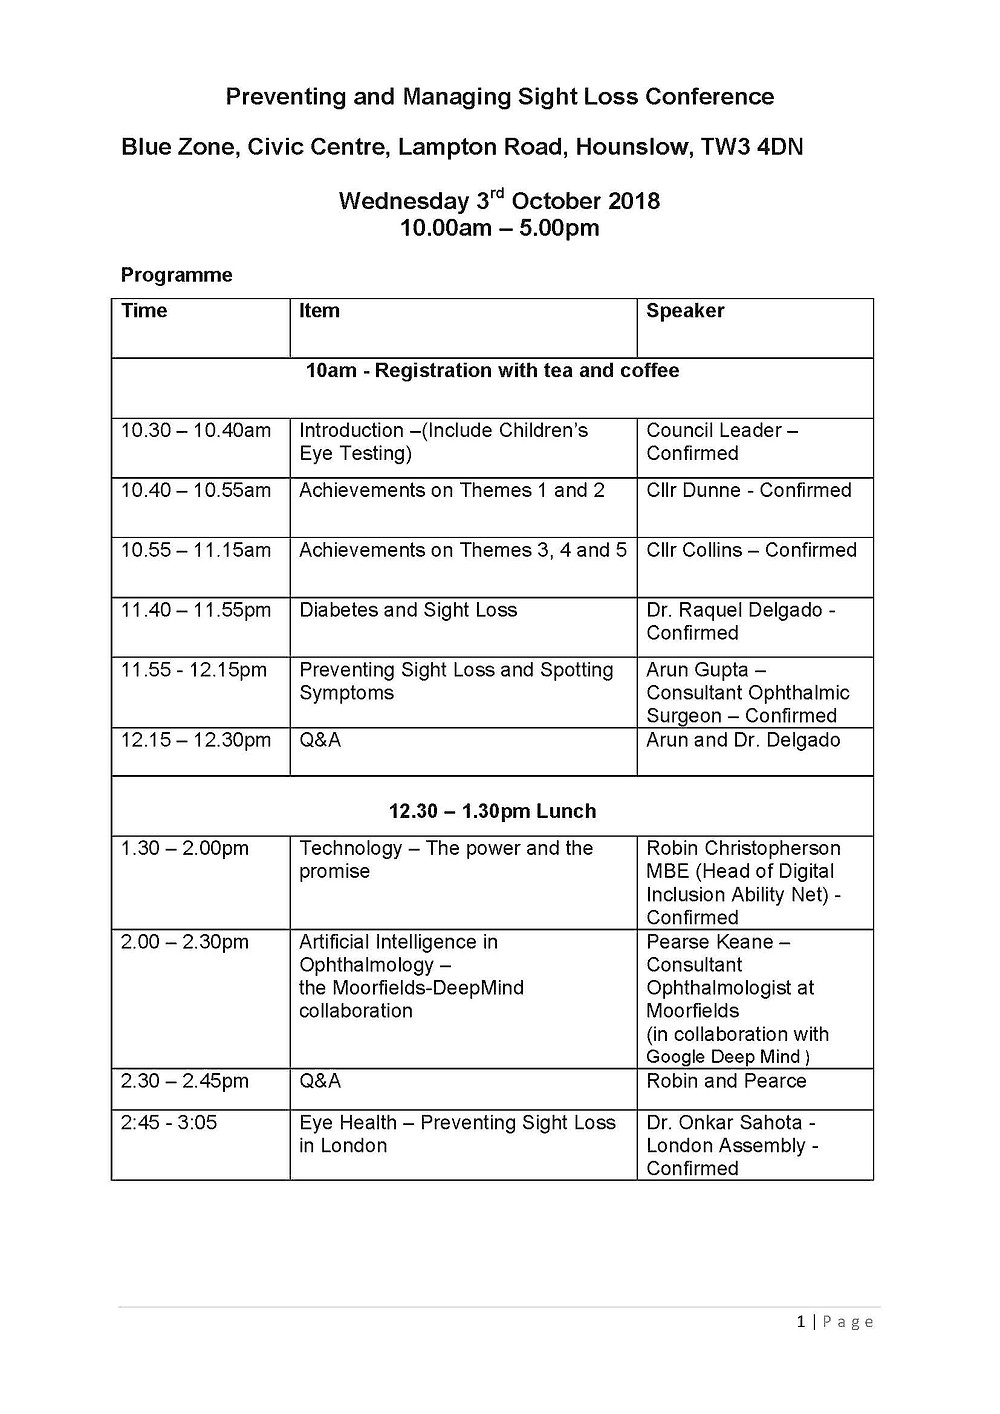 Schedule for Preventing and Managing Sight Loss Conference on 03/10/18 in Hounslow, London, page 1